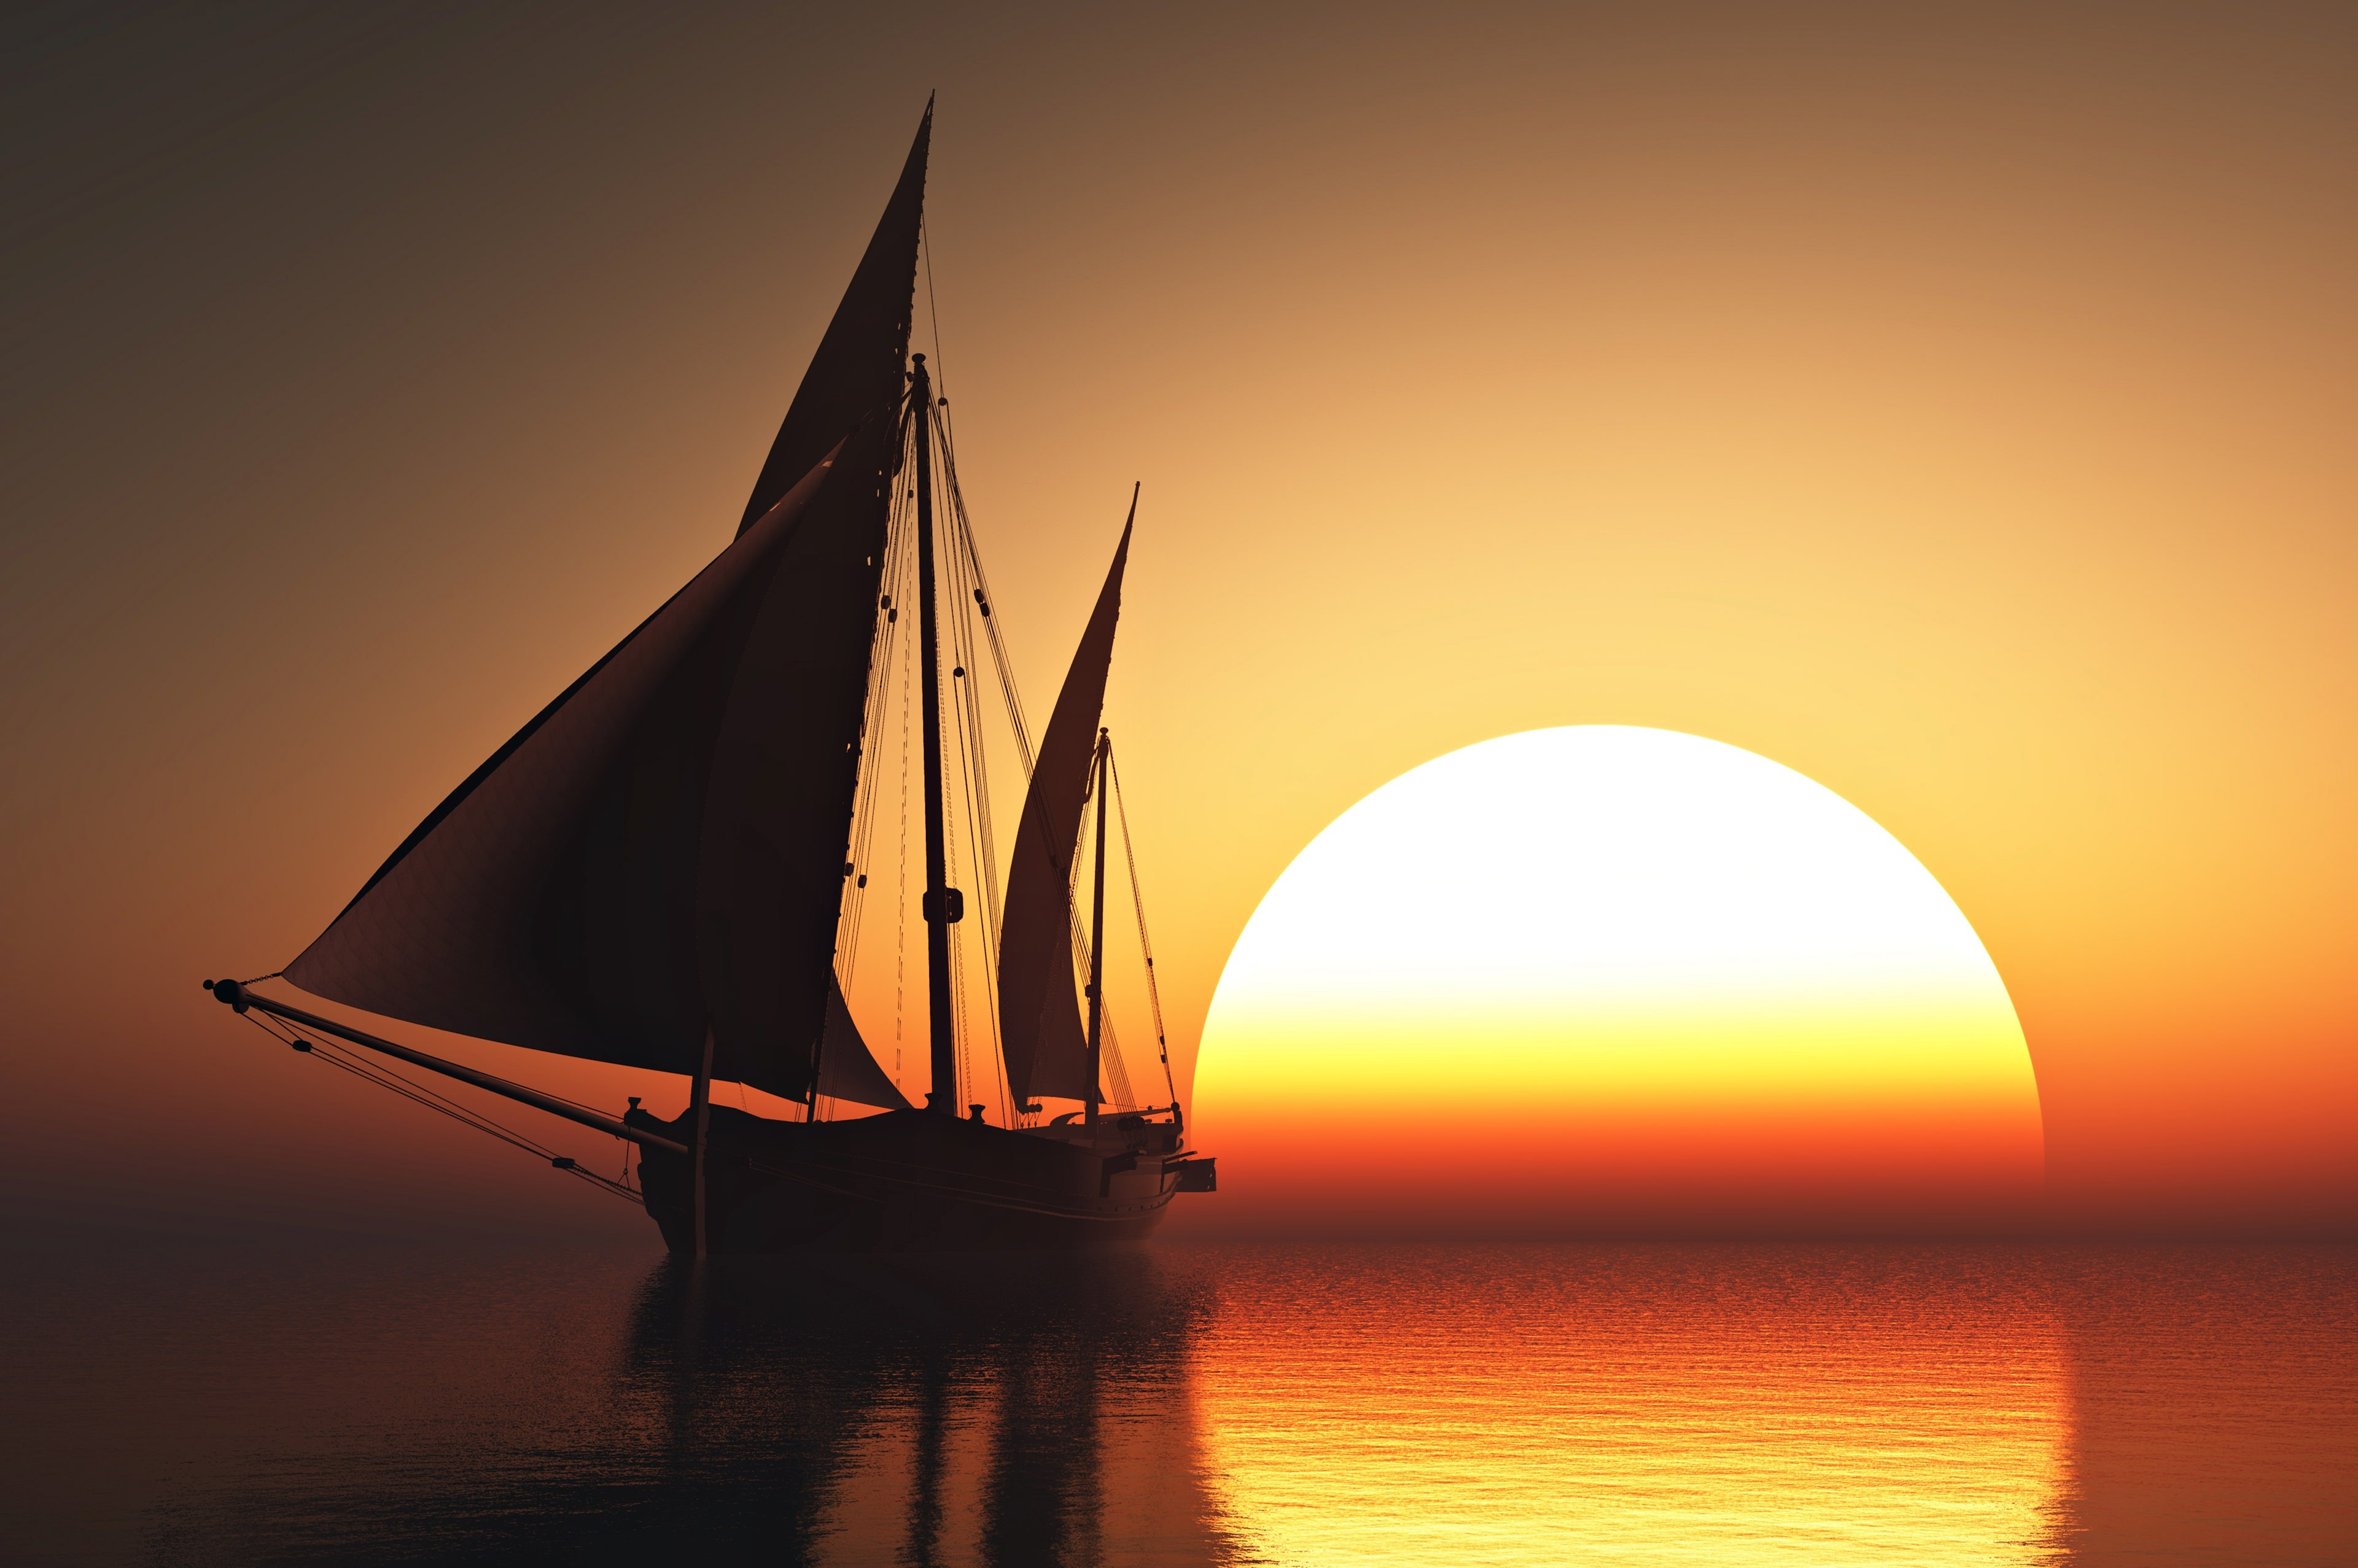 Beautiful Sunset Sailing Wallpaper